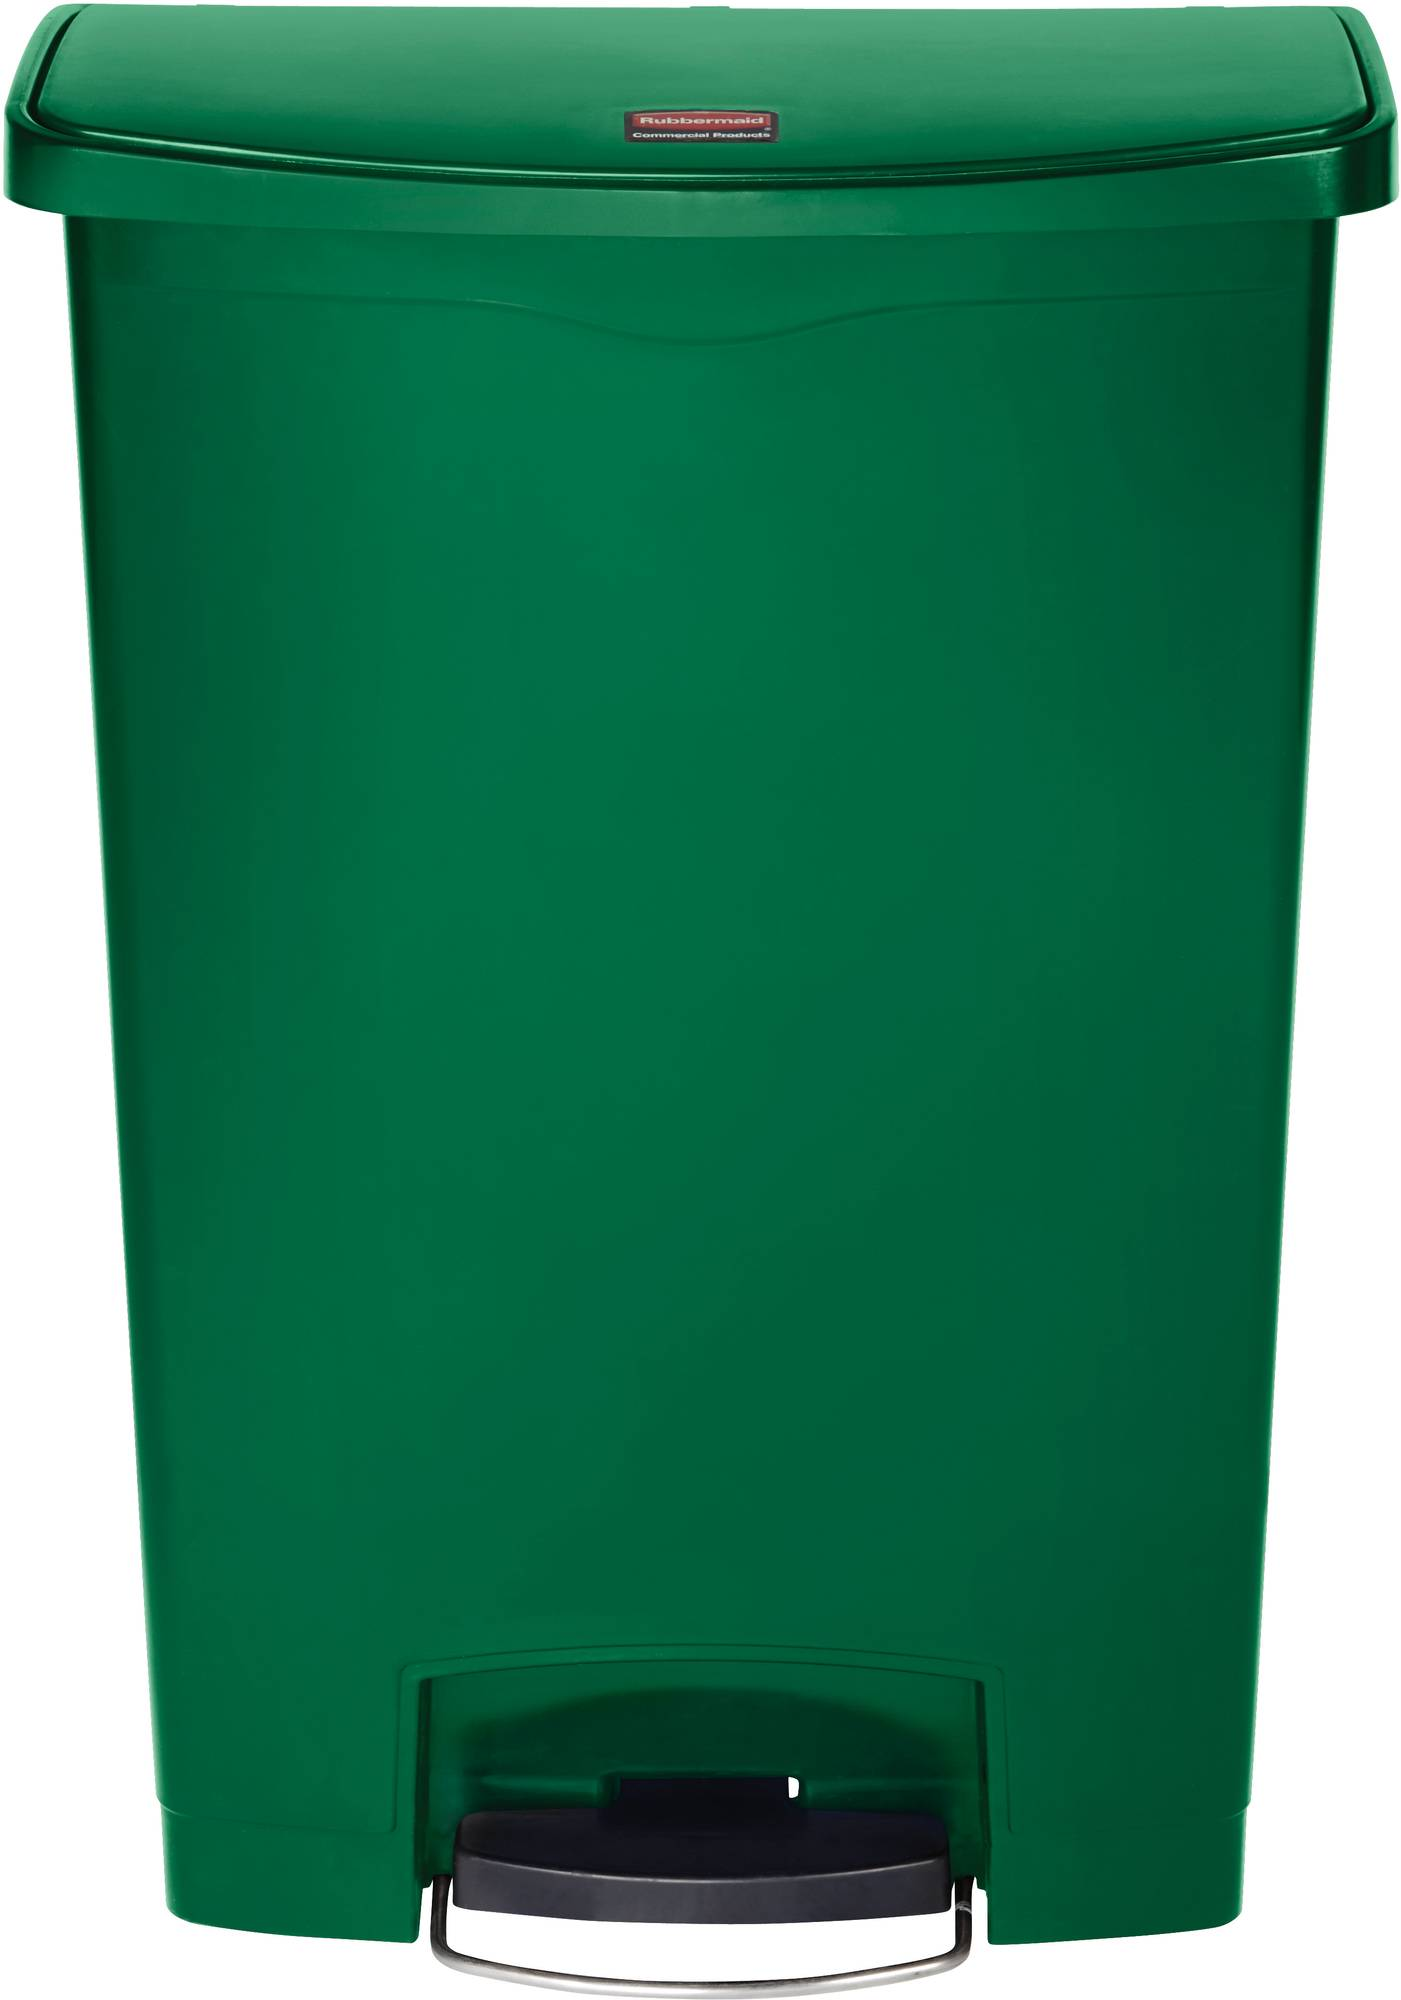 Grüner Rubbermaid Slim Jim Step On Container, Front Step, 90 l mit praktischem Fußpedal, vorn